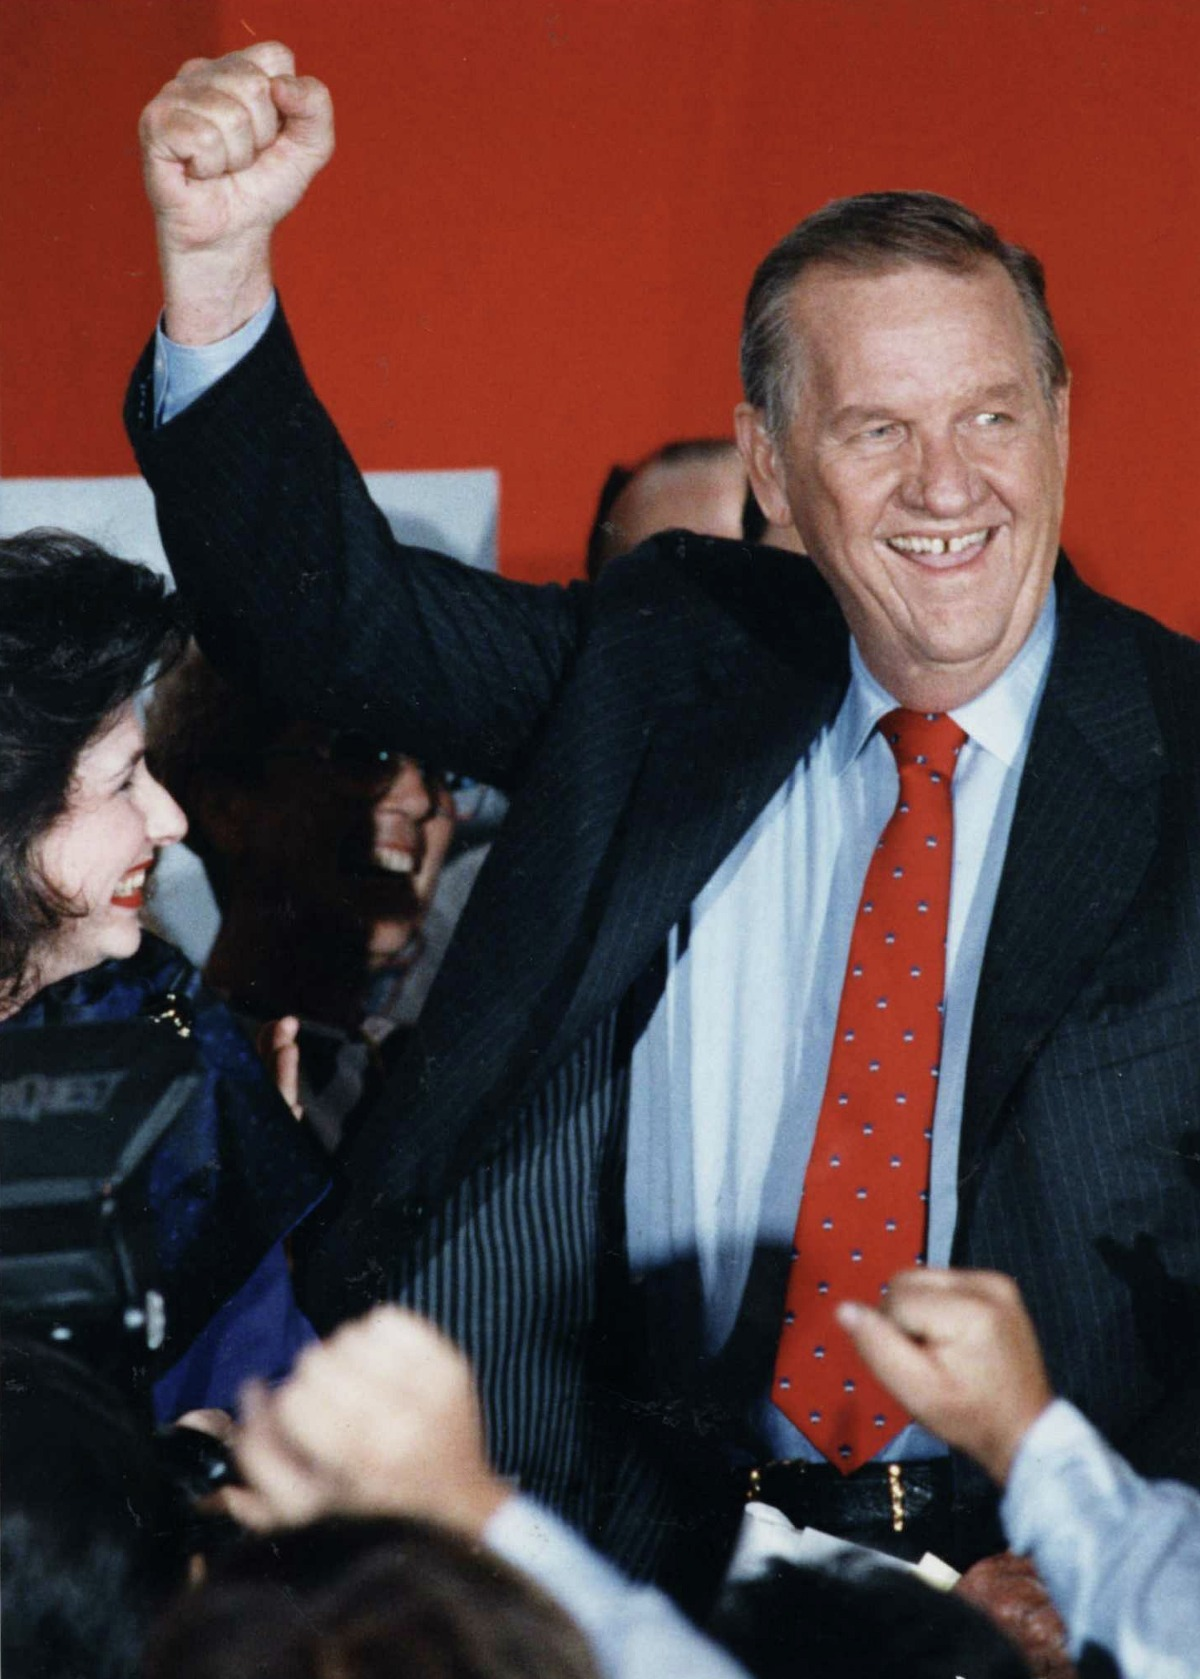 (Nov 5, 1991) Mayoral runoff candidate, Bob Lanier, as he makes a victory speech at his headquarters, after incumbent Kathy Whitmire conceded defeat. (Dave Einsel/Houston Chronicle)